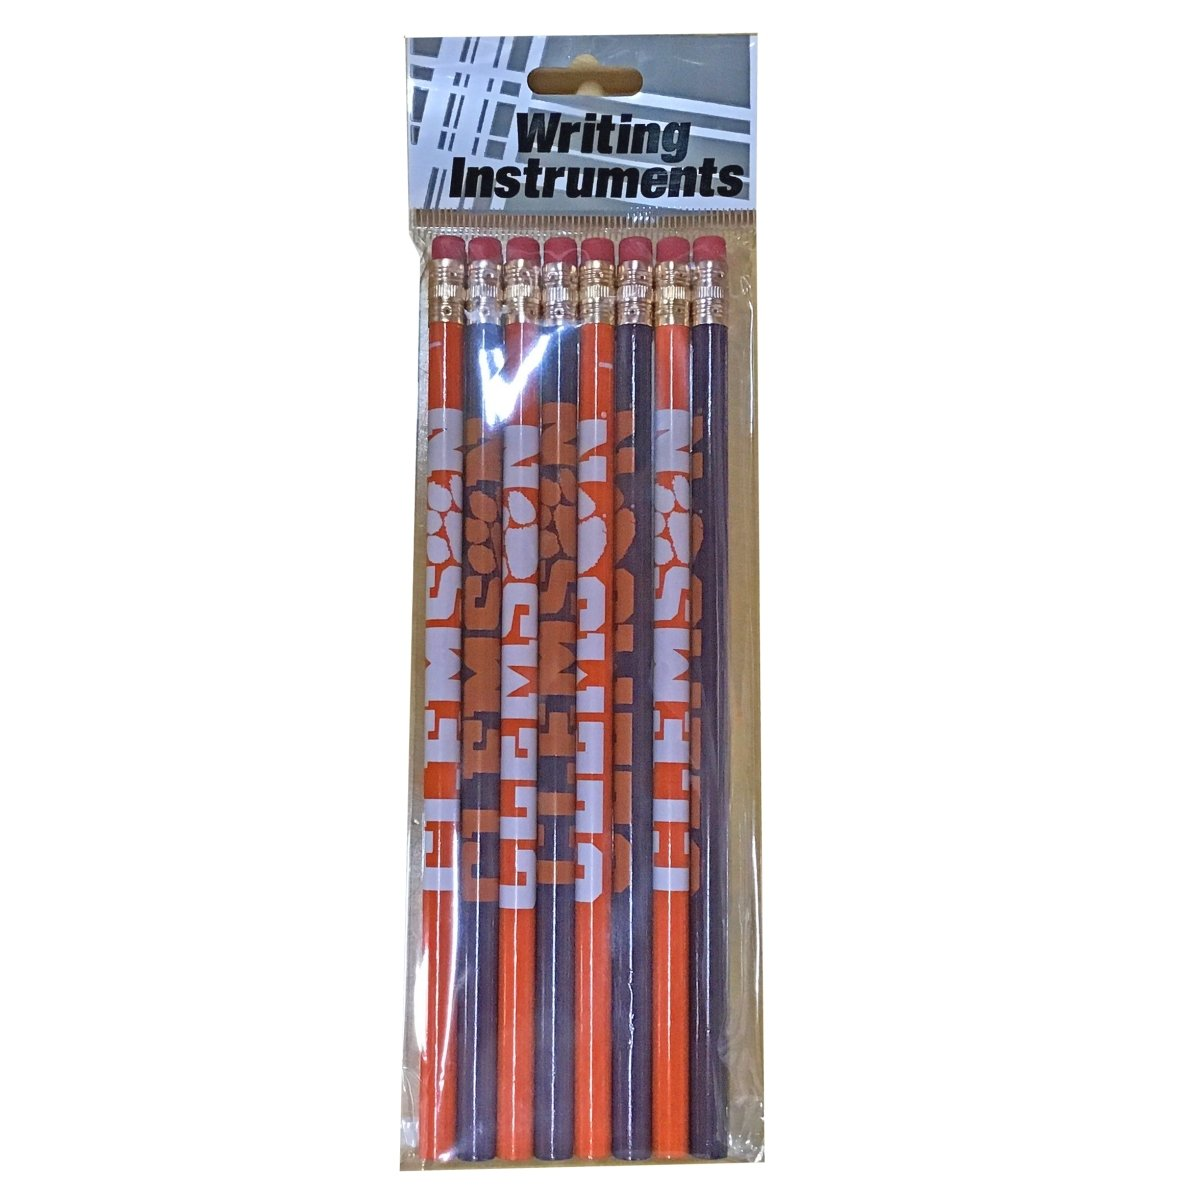 8 Pack #2 Pencils - Mr. Knickerbocker